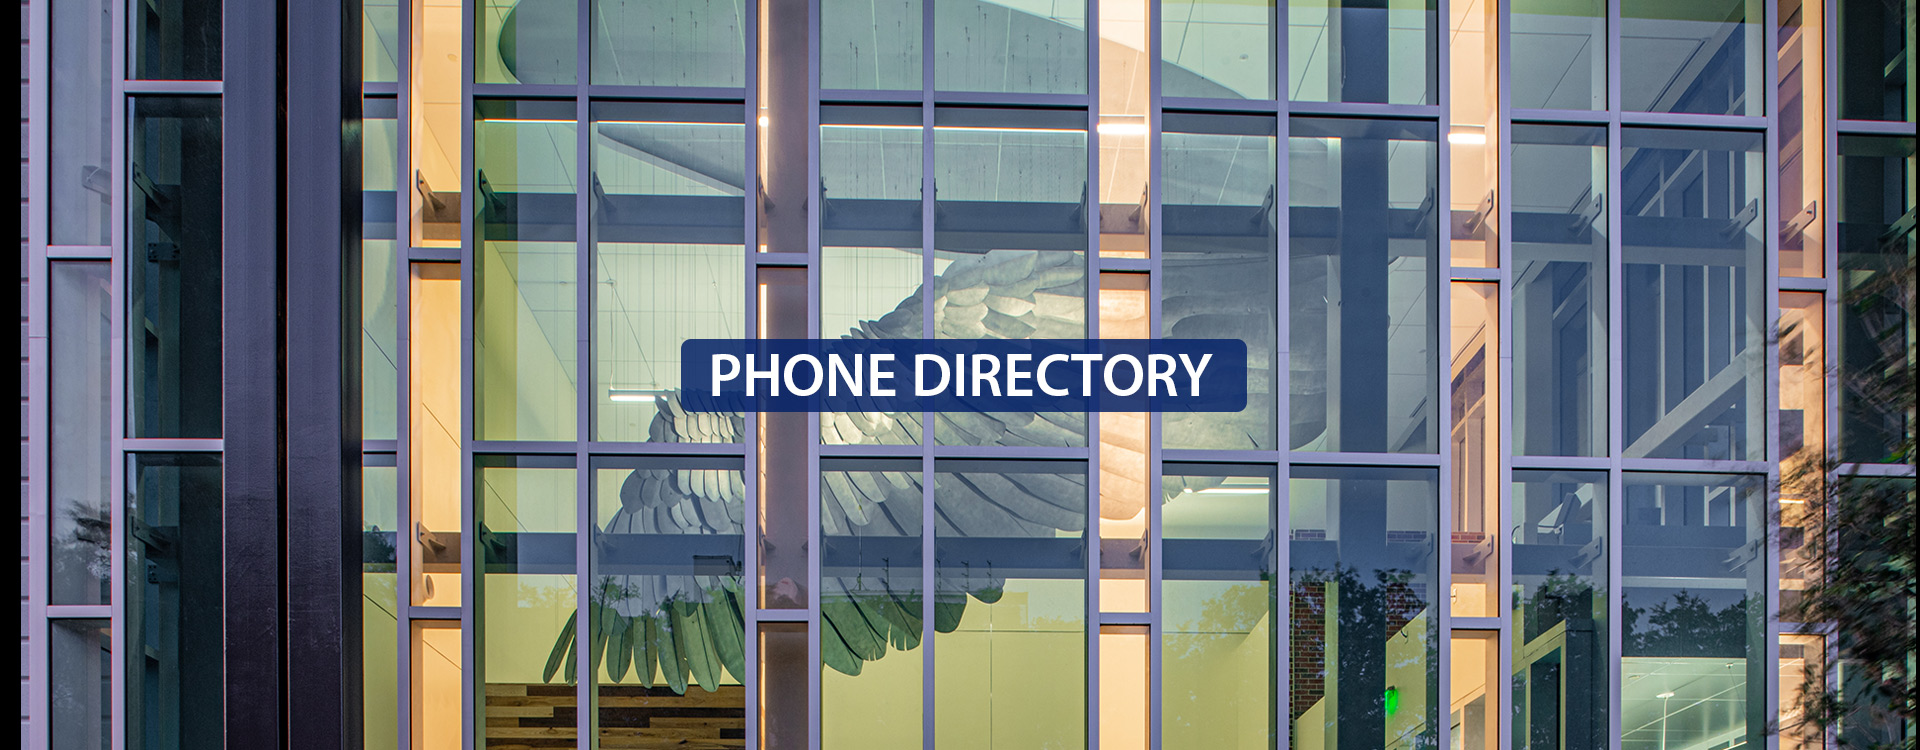 Phone Directory